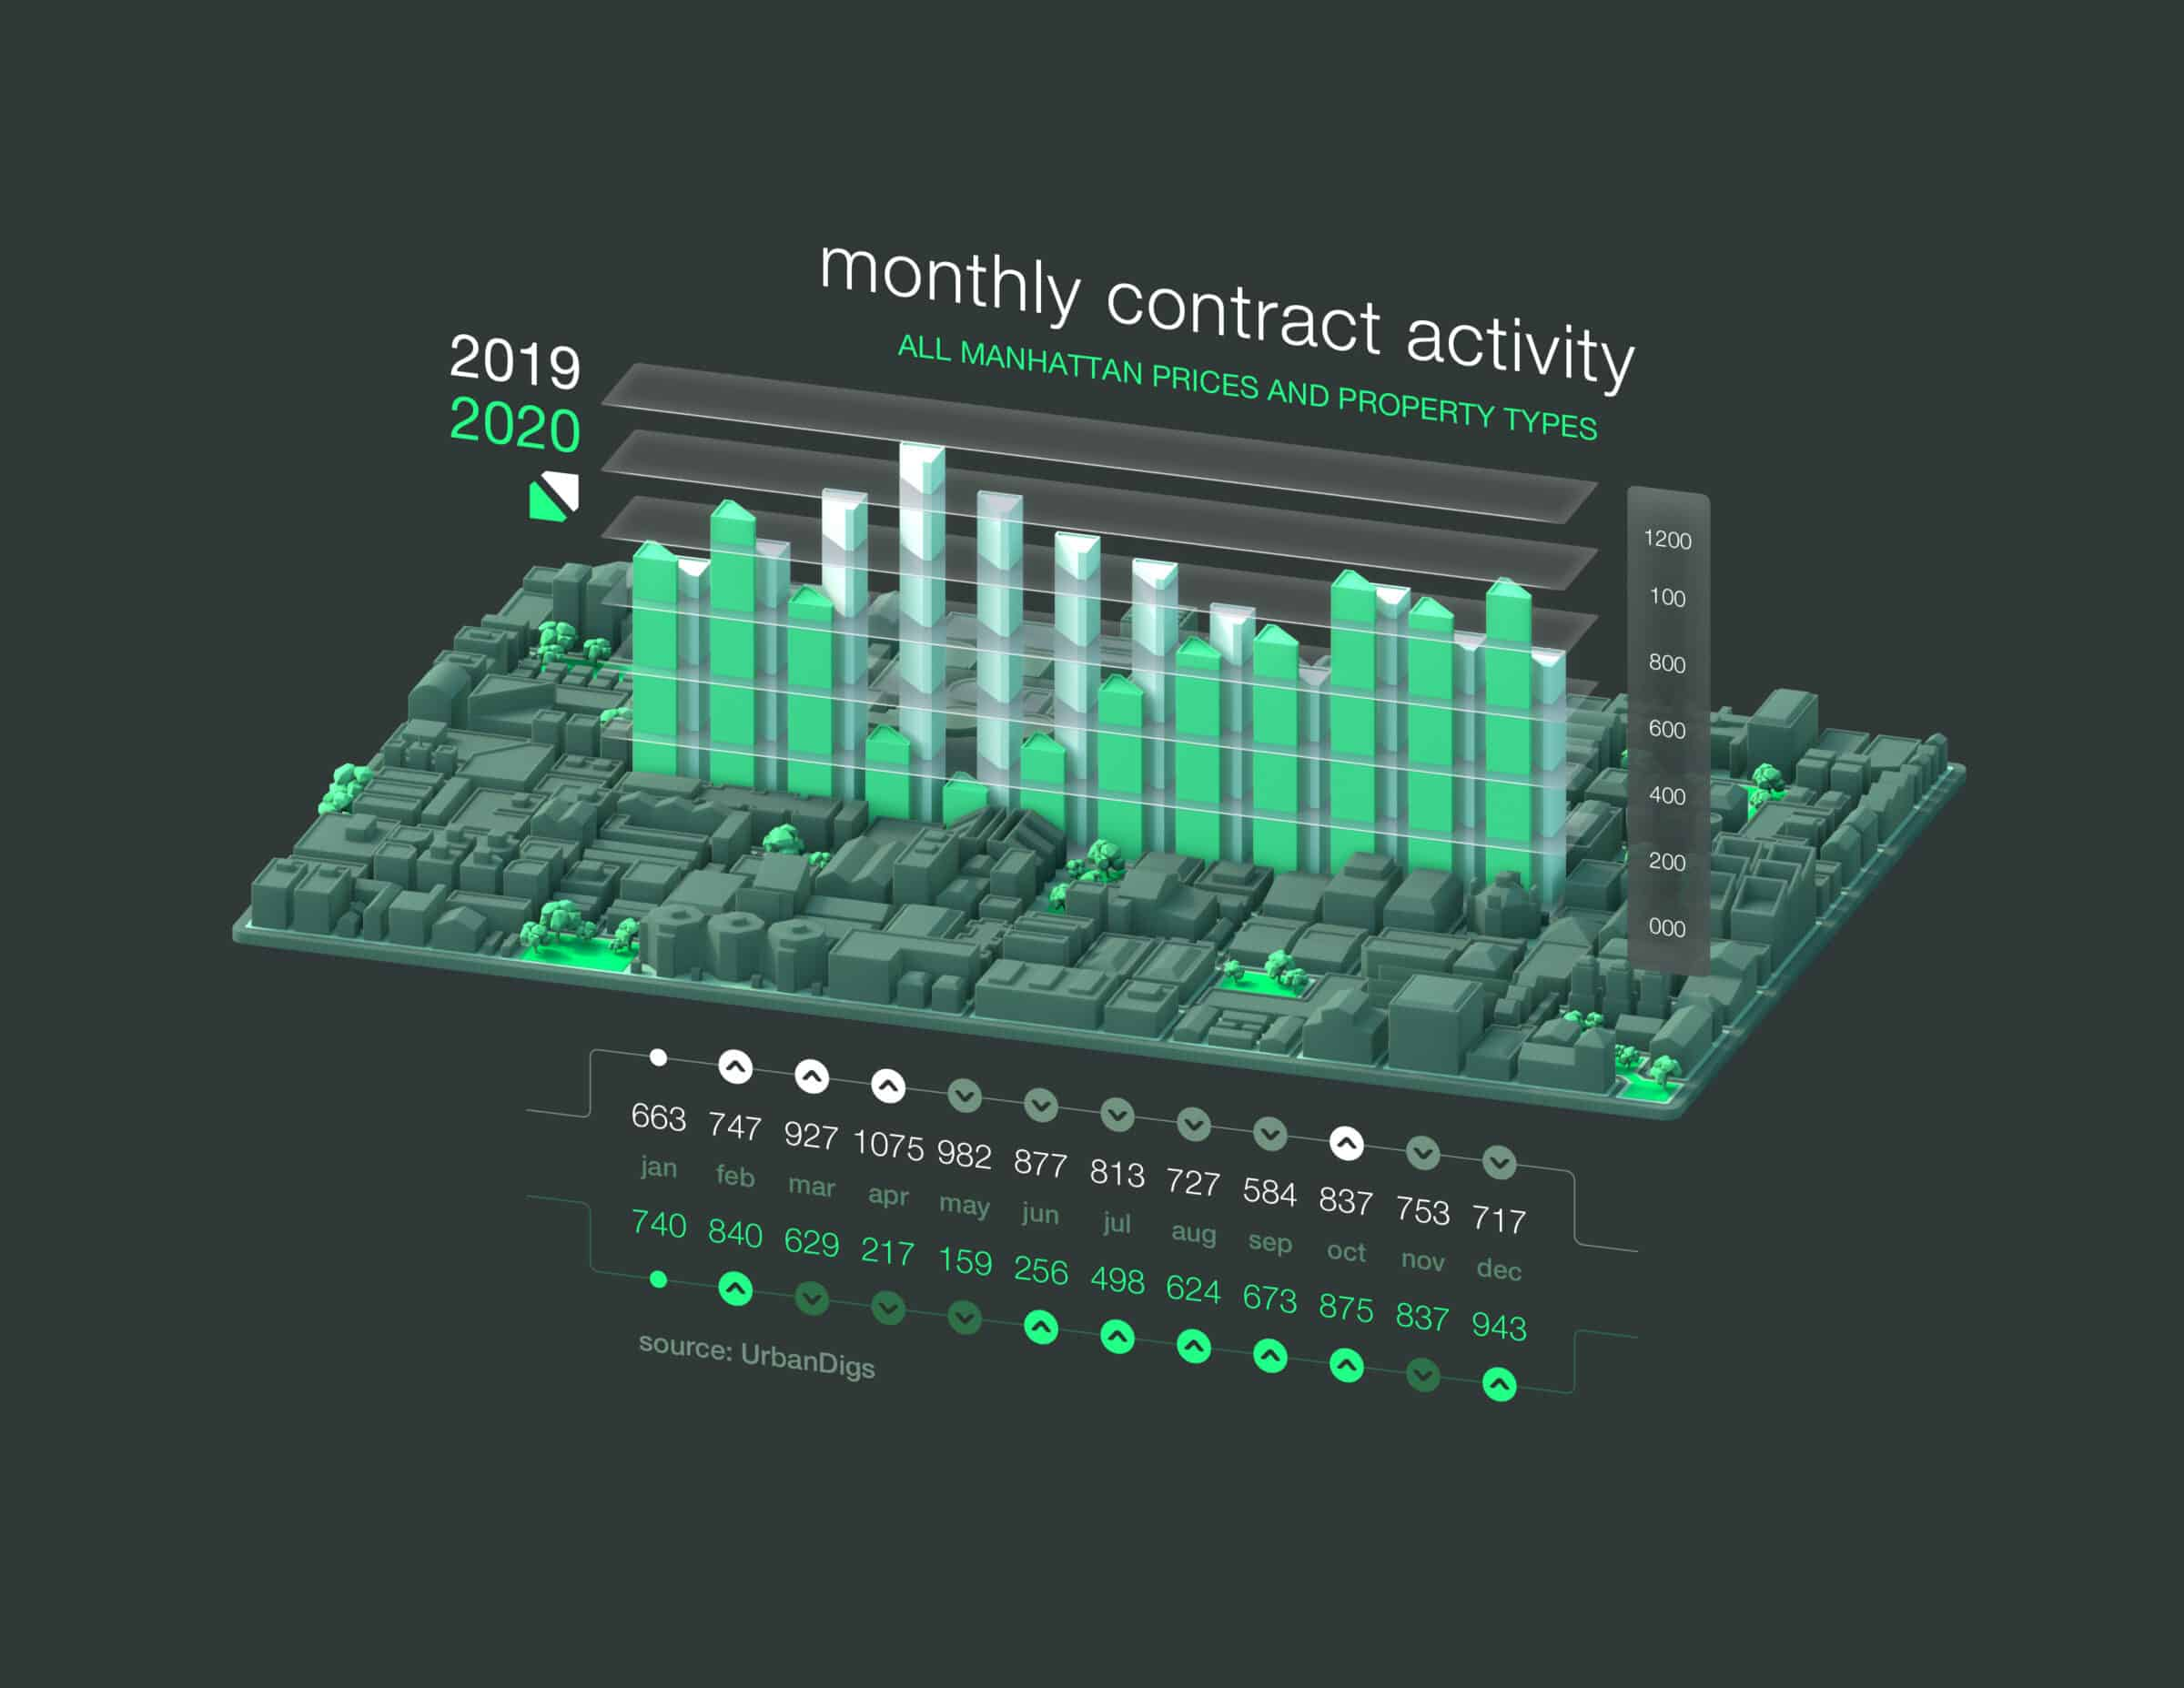 manhattan monthly contract activity by urbandigs